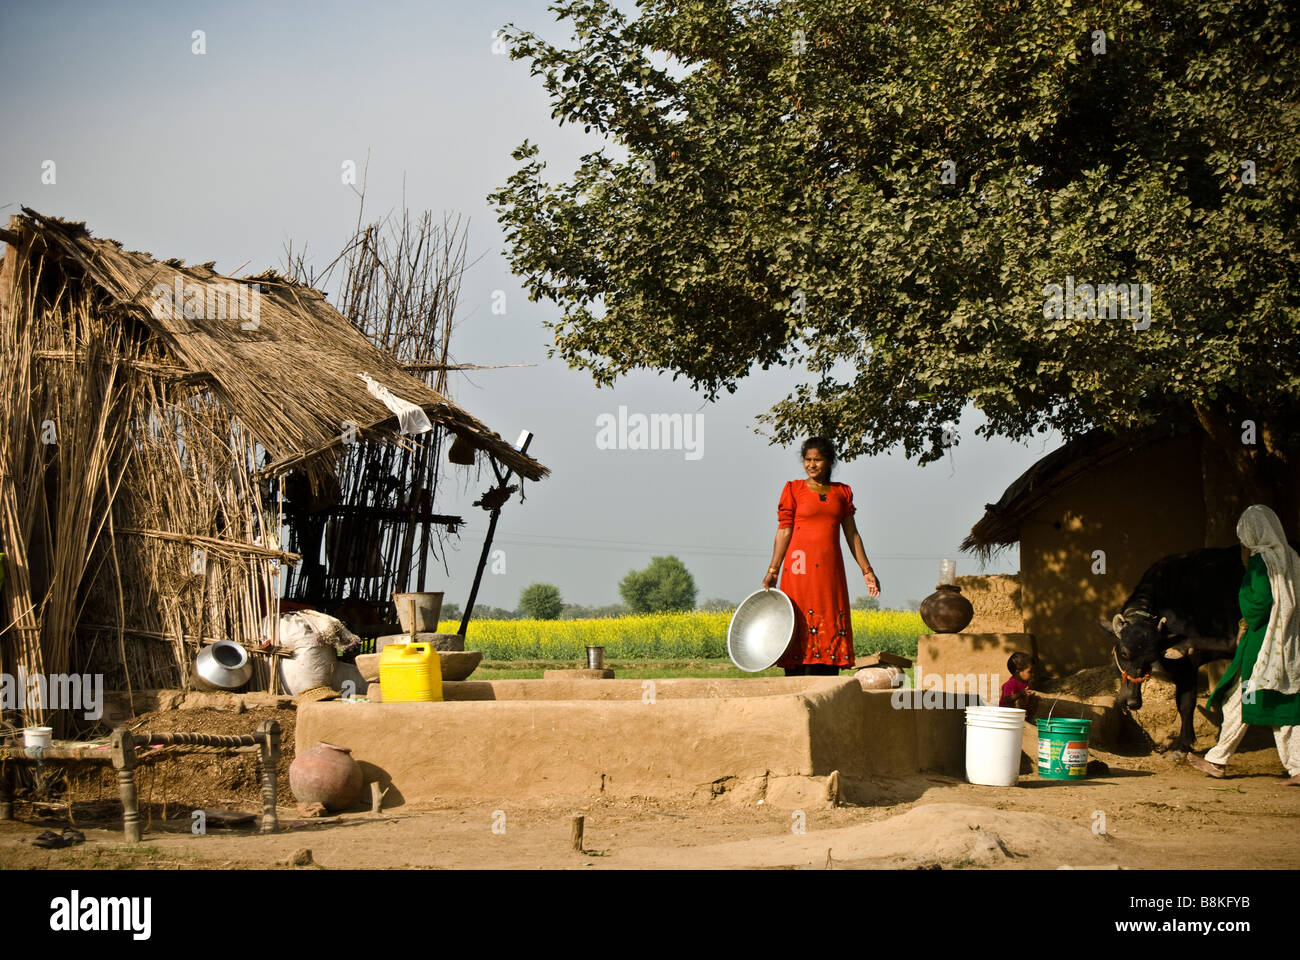 Some cheery women attending to their daily routine in the colourful 'Dolori' village, 300km from Jaipur, India. Stock Photo